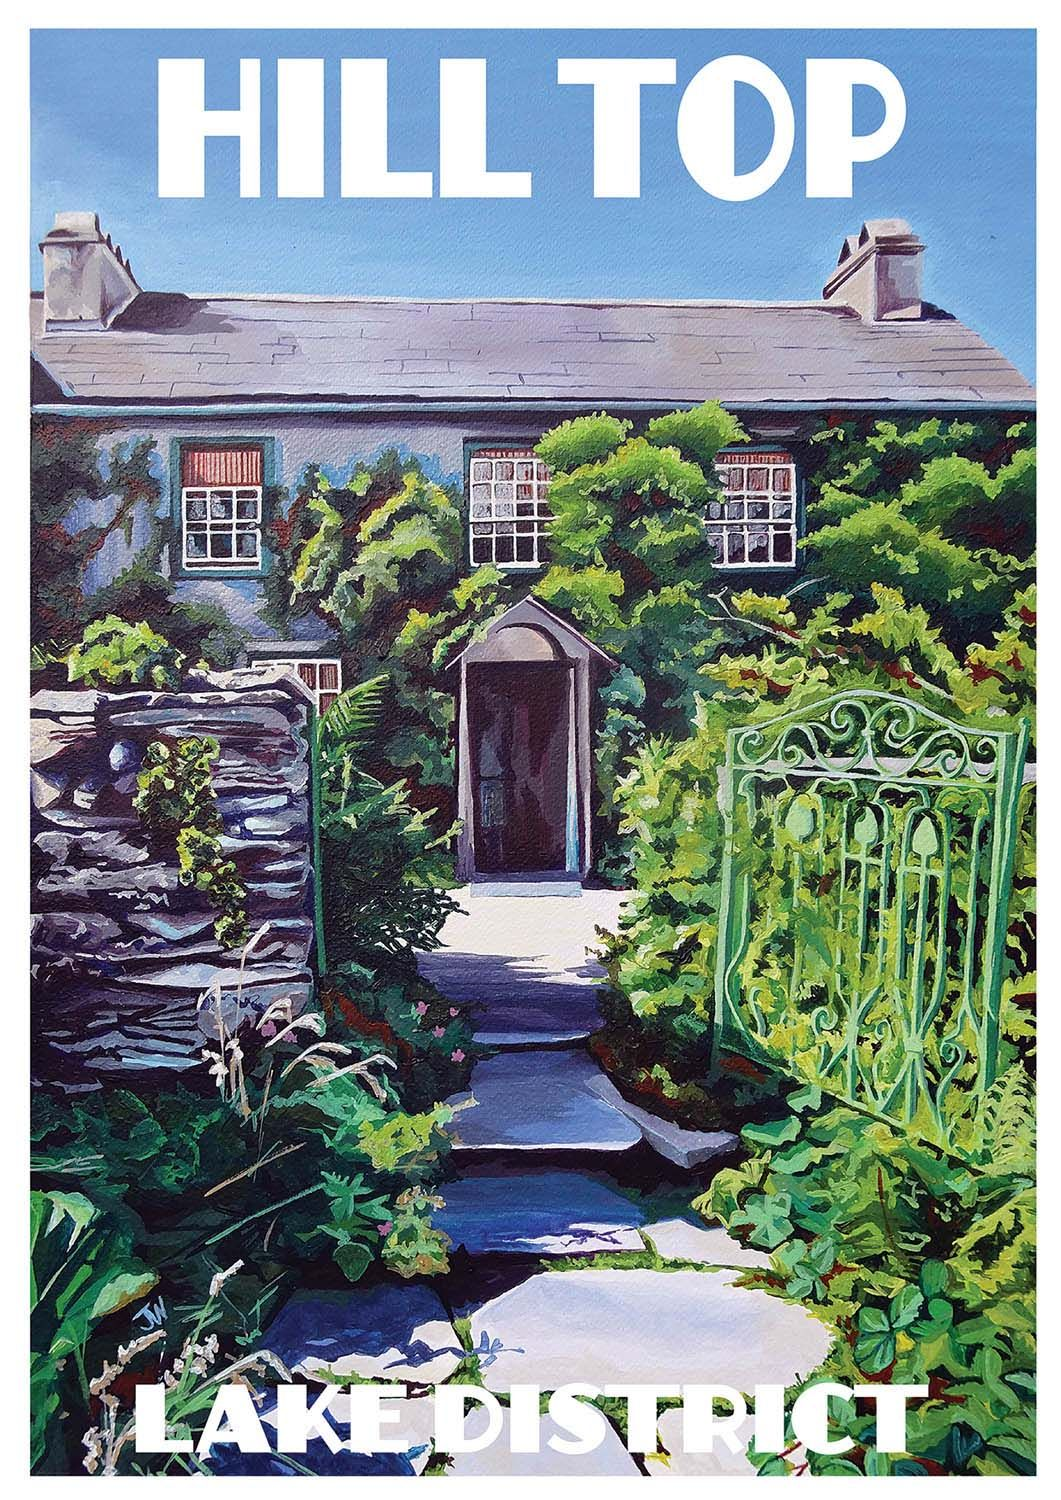 Jo Witherington, Artist - Hill Top, the home of Beatrix Potter, Lake District